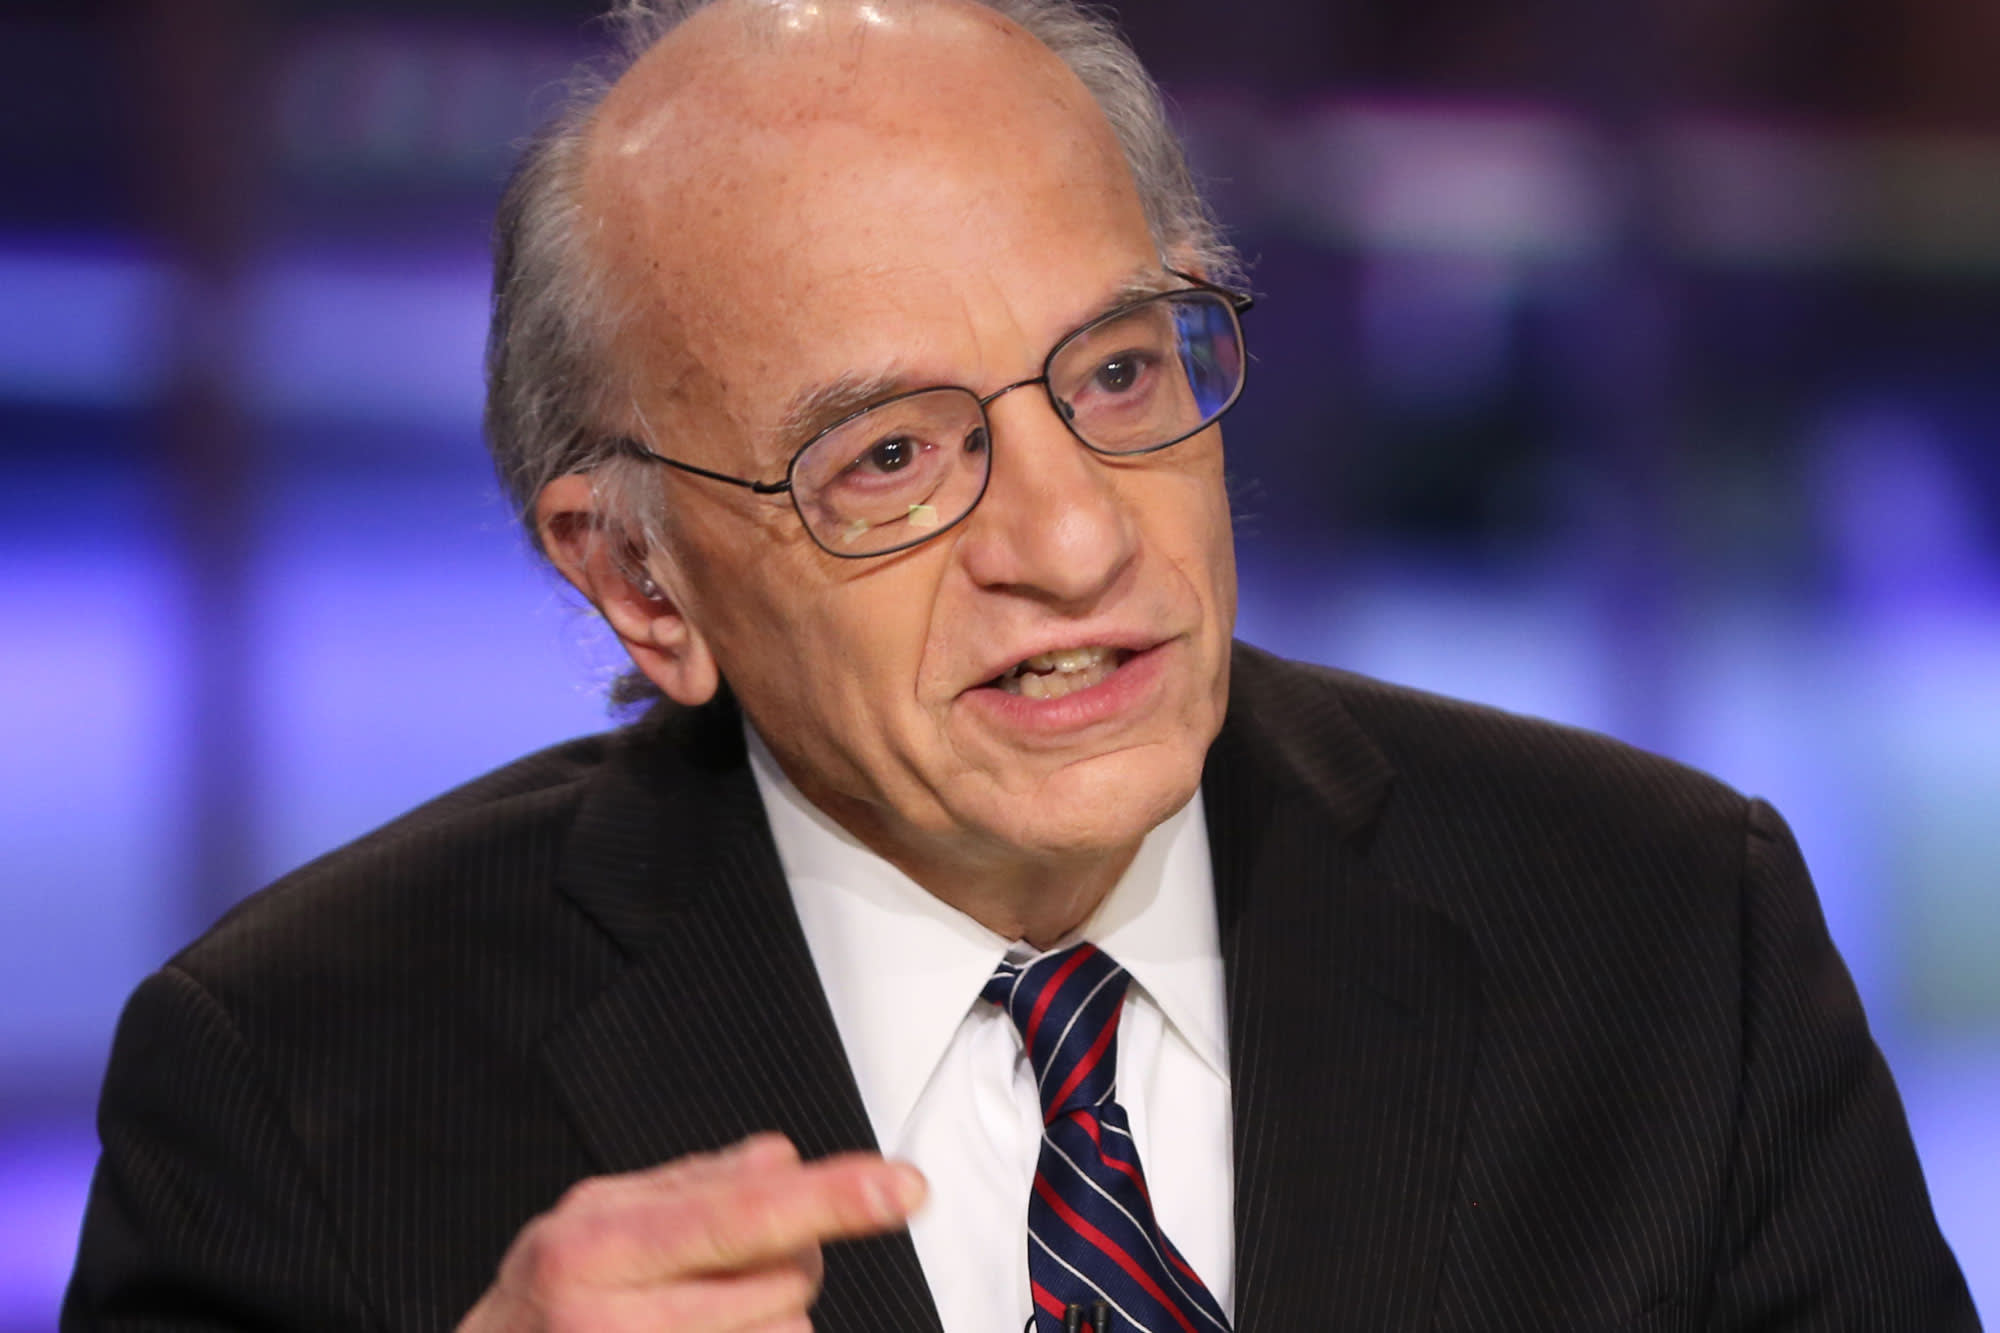 Market is unprepared for the inflation fallout, Wharton's Jeremy Siegel warns